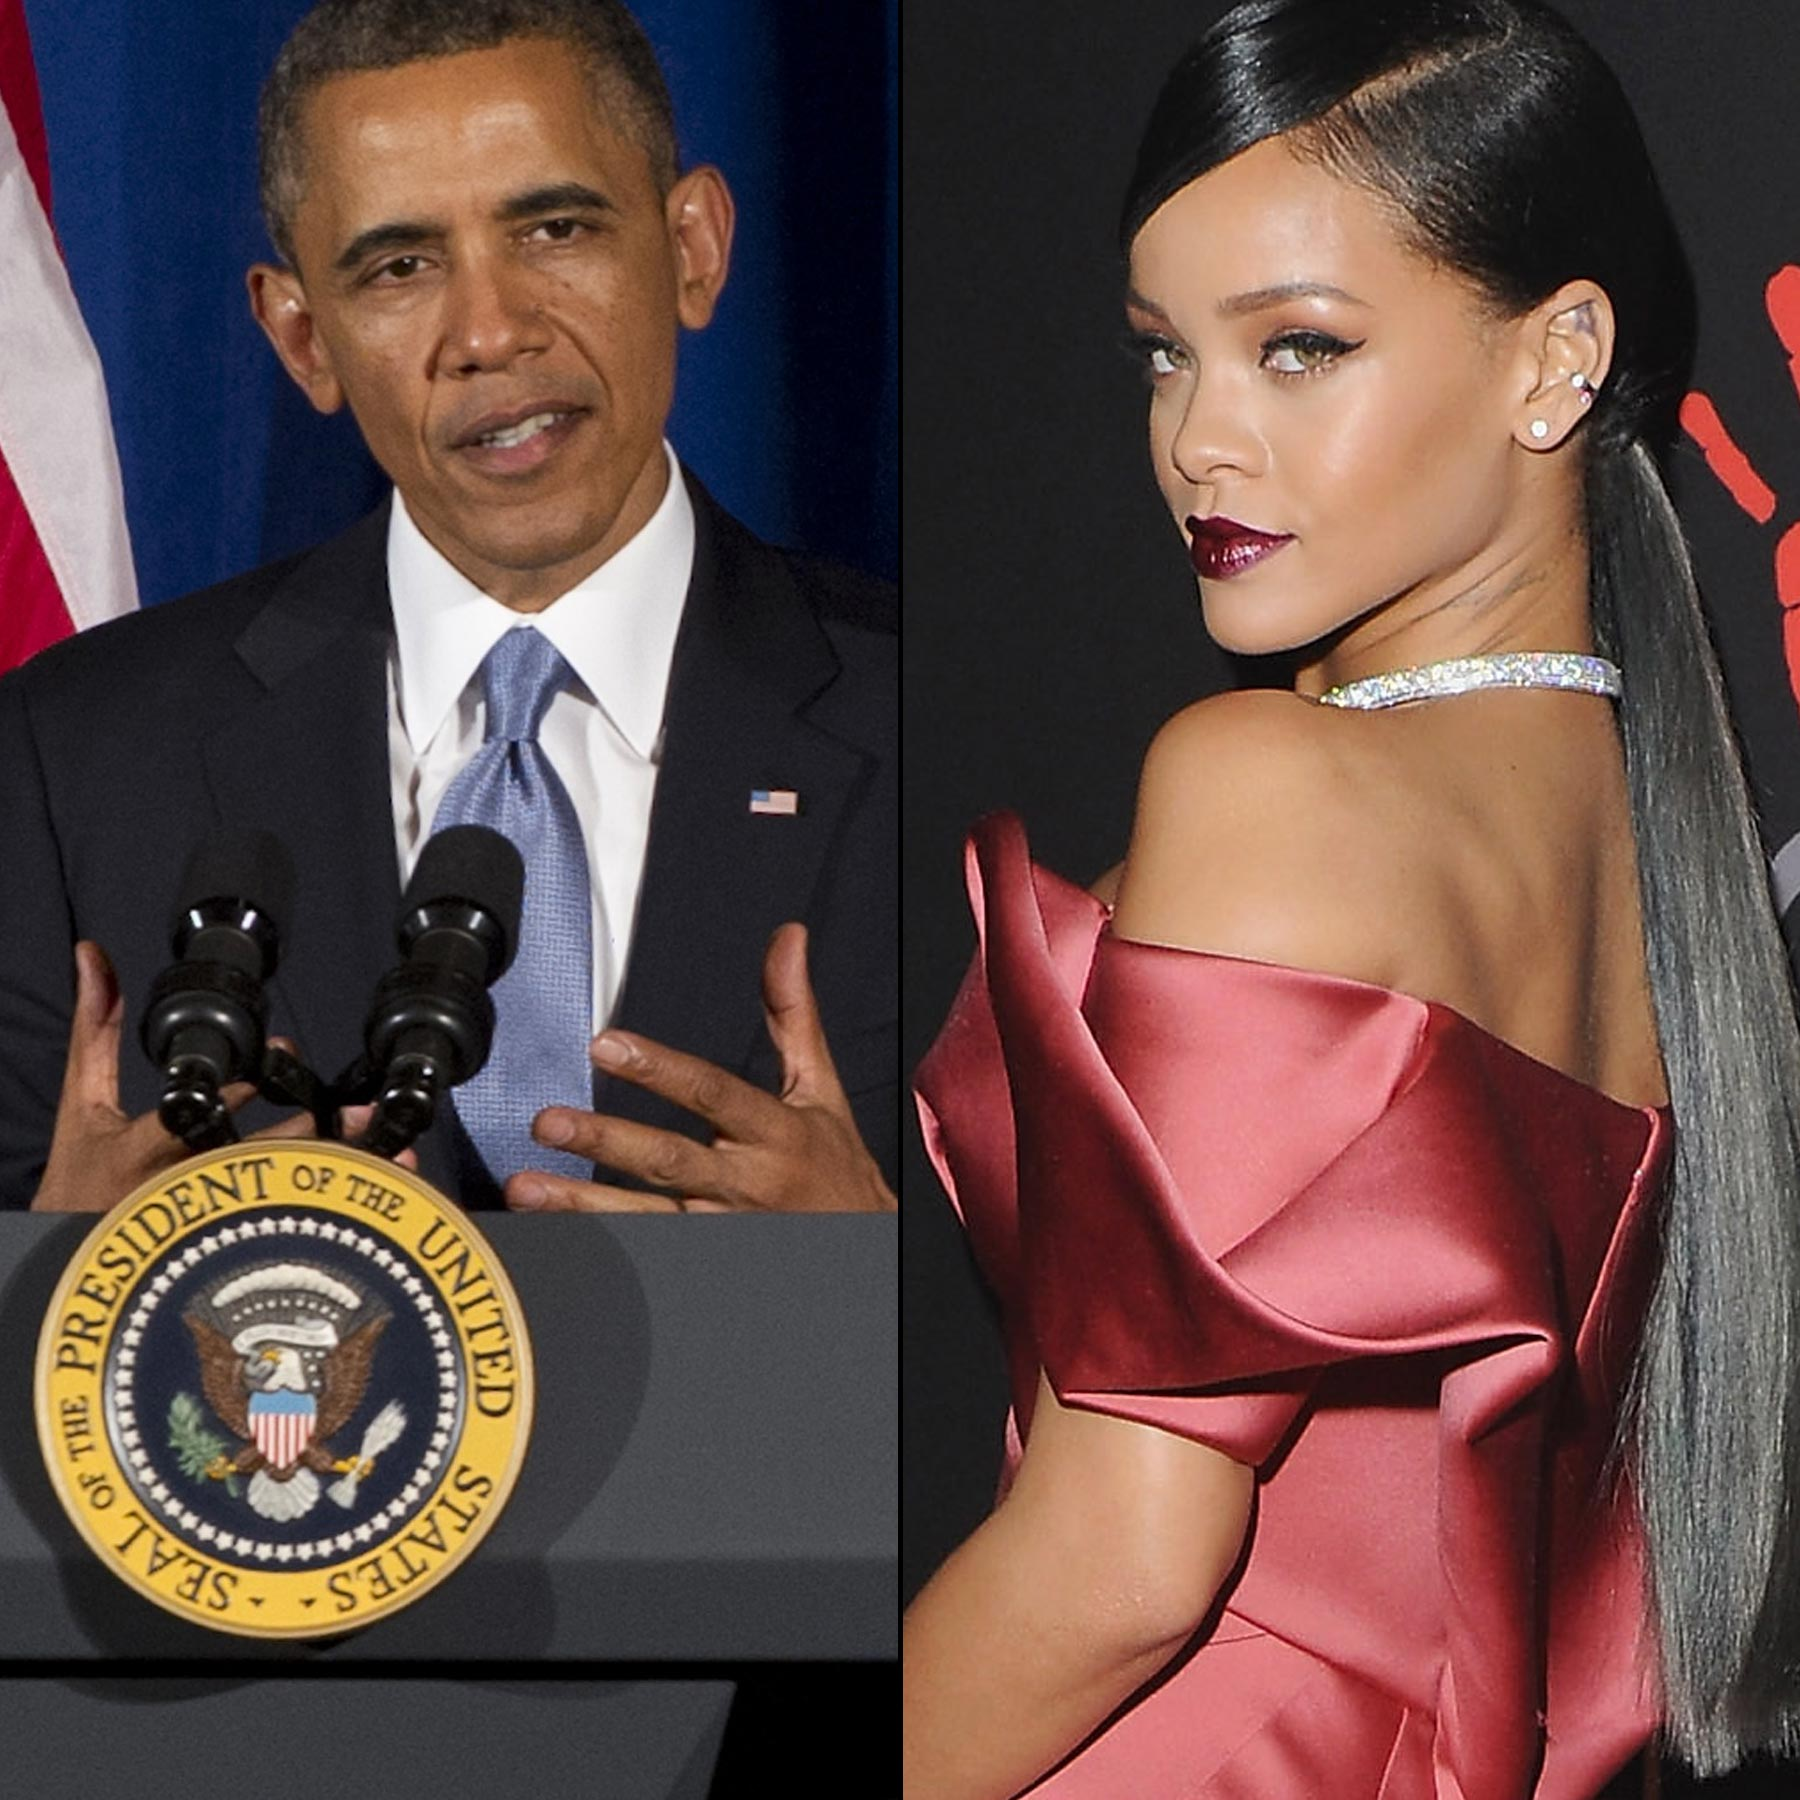 barack-obama-says-he-totally-knows-all-the-lyrics-to-rihannas-work-and-would-have-no-problem-singing-the-jam